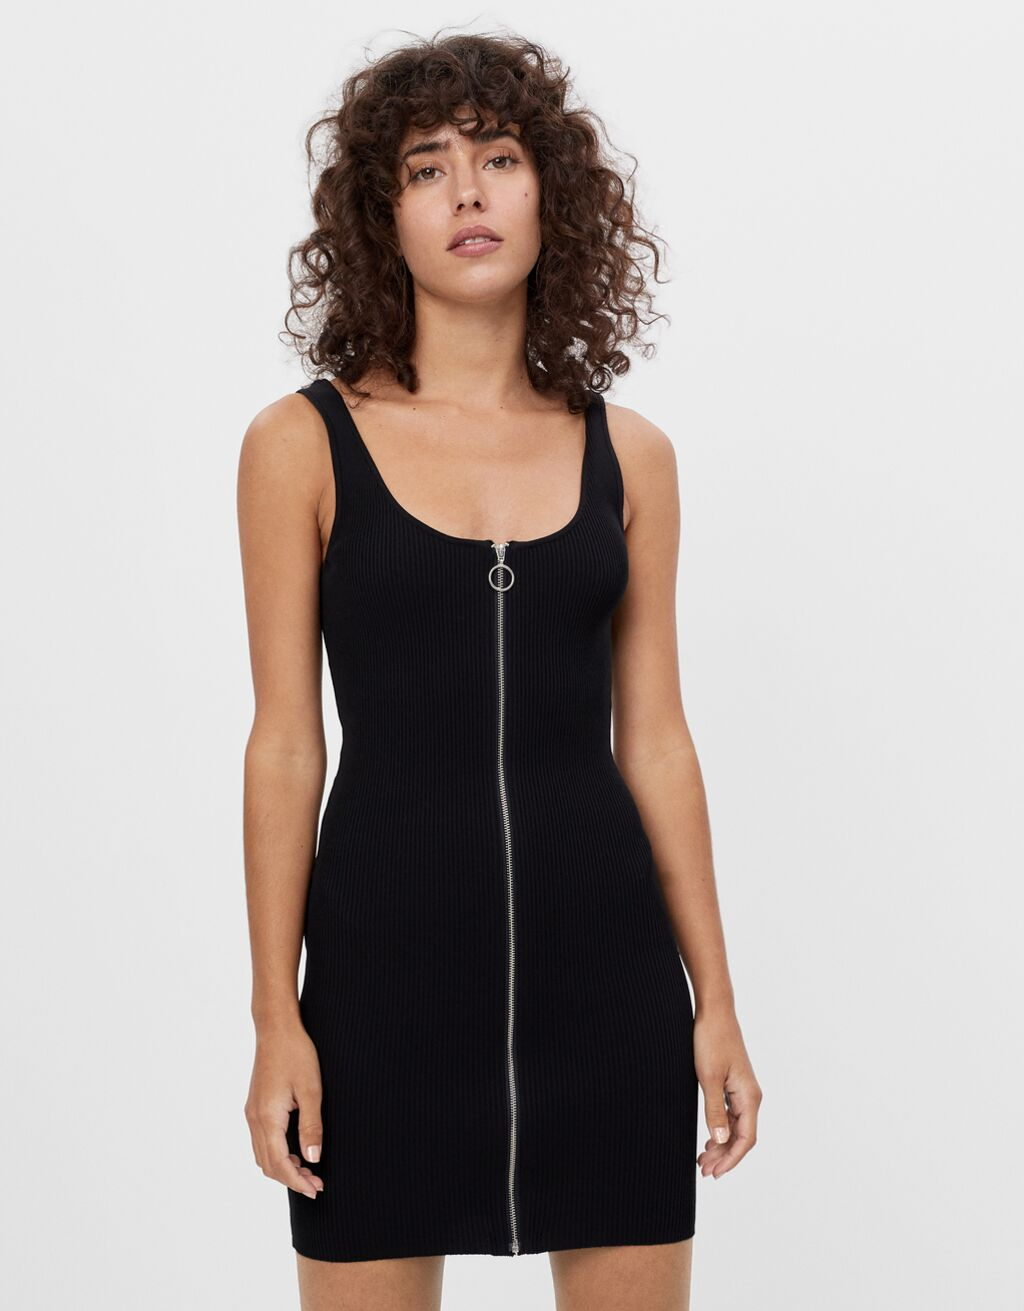 Zip-up dress with straps